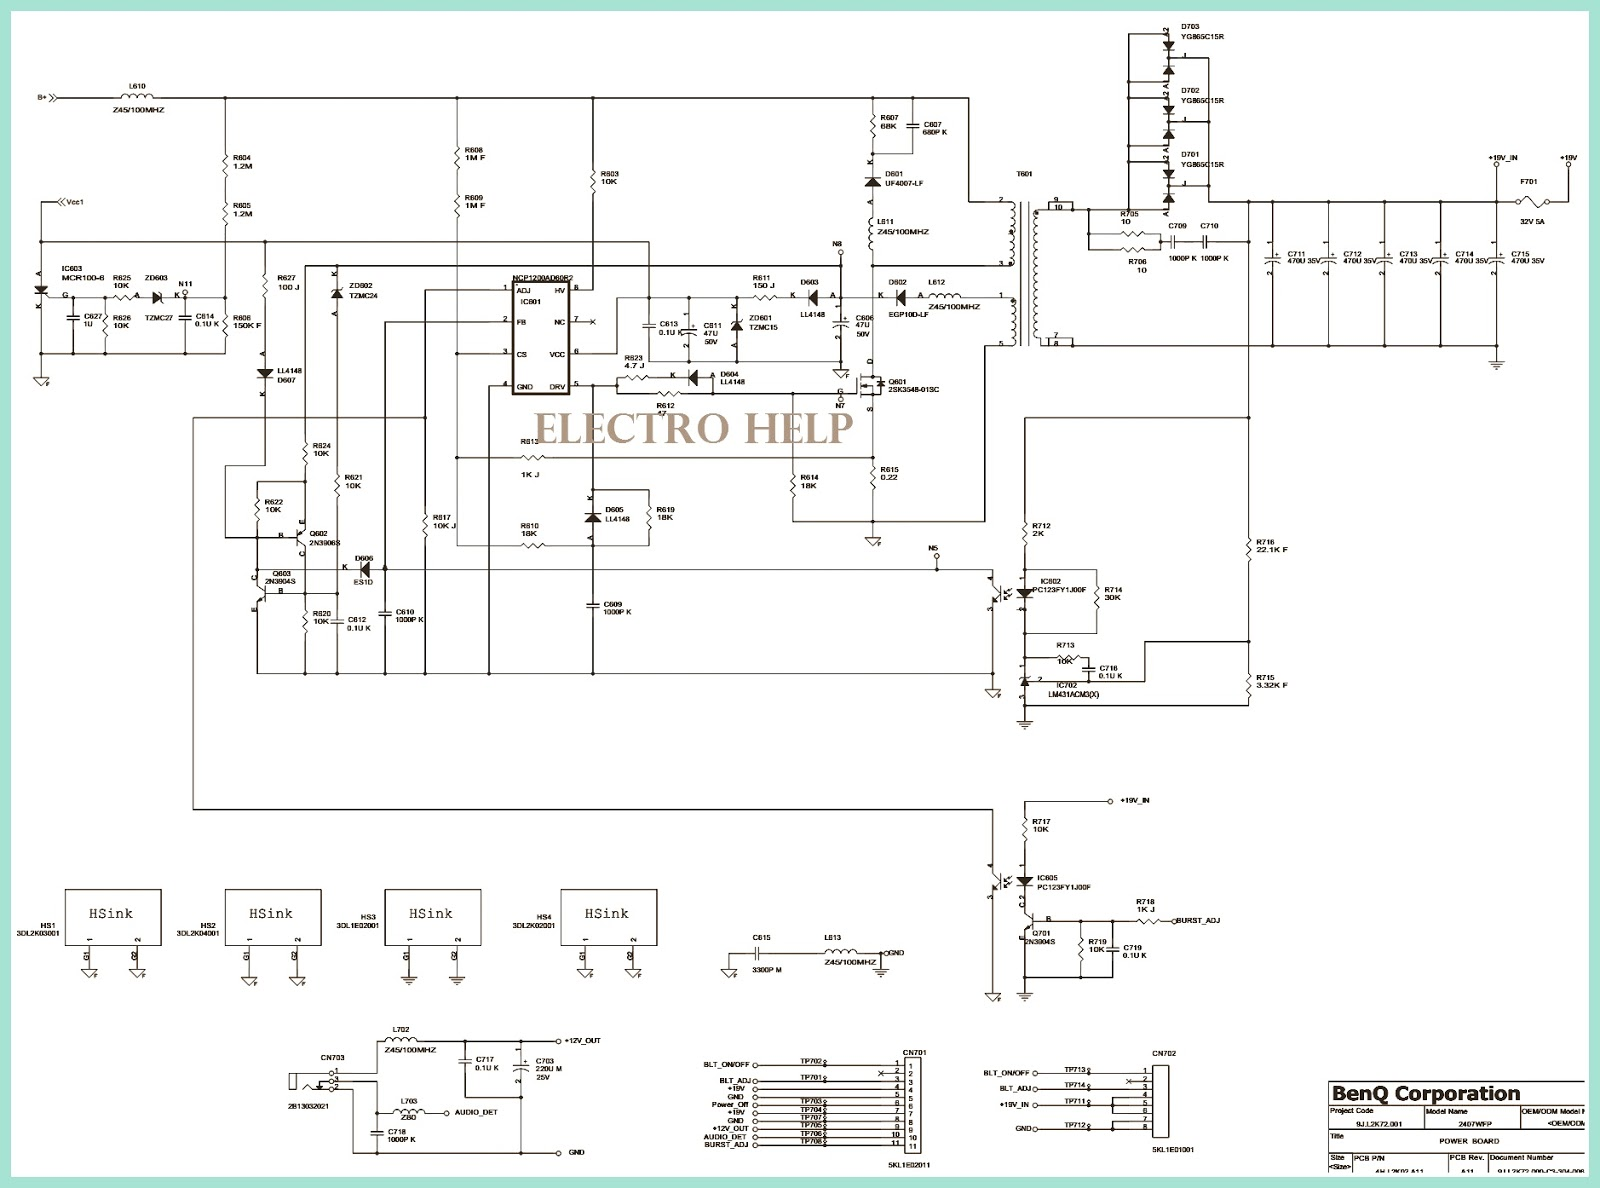 FIG 2 dell 2407 and benq lcd monitors power supply regulator board battery monitor circuit diagram at readyjetset.co